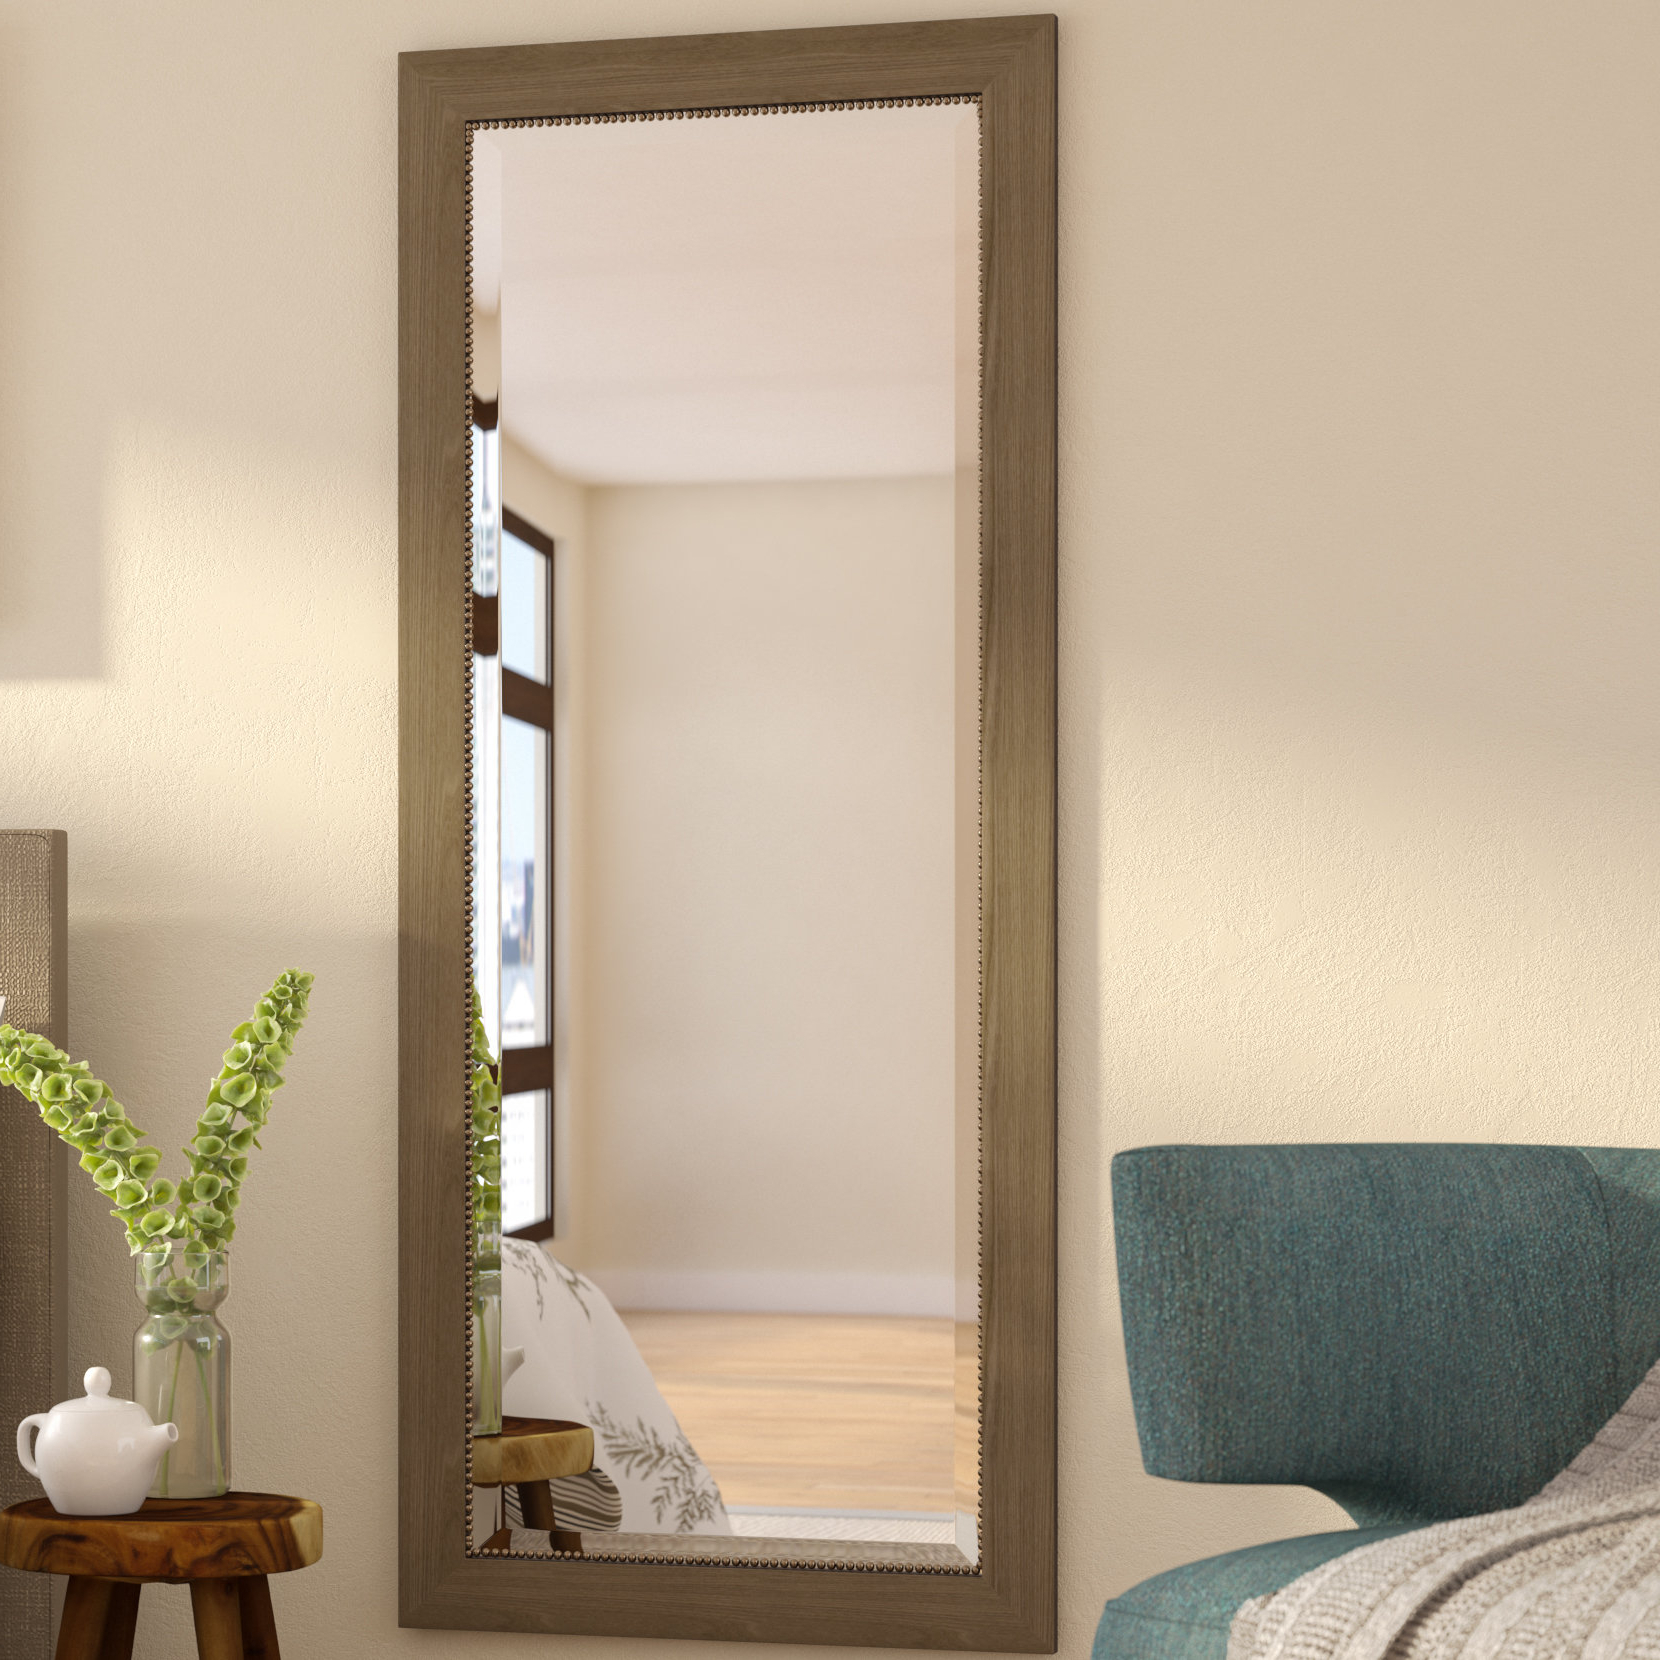 Best And Newest Rectangle Beveled Wall Mirror Within Beveled Wall Mirrors (View 11 of 20)